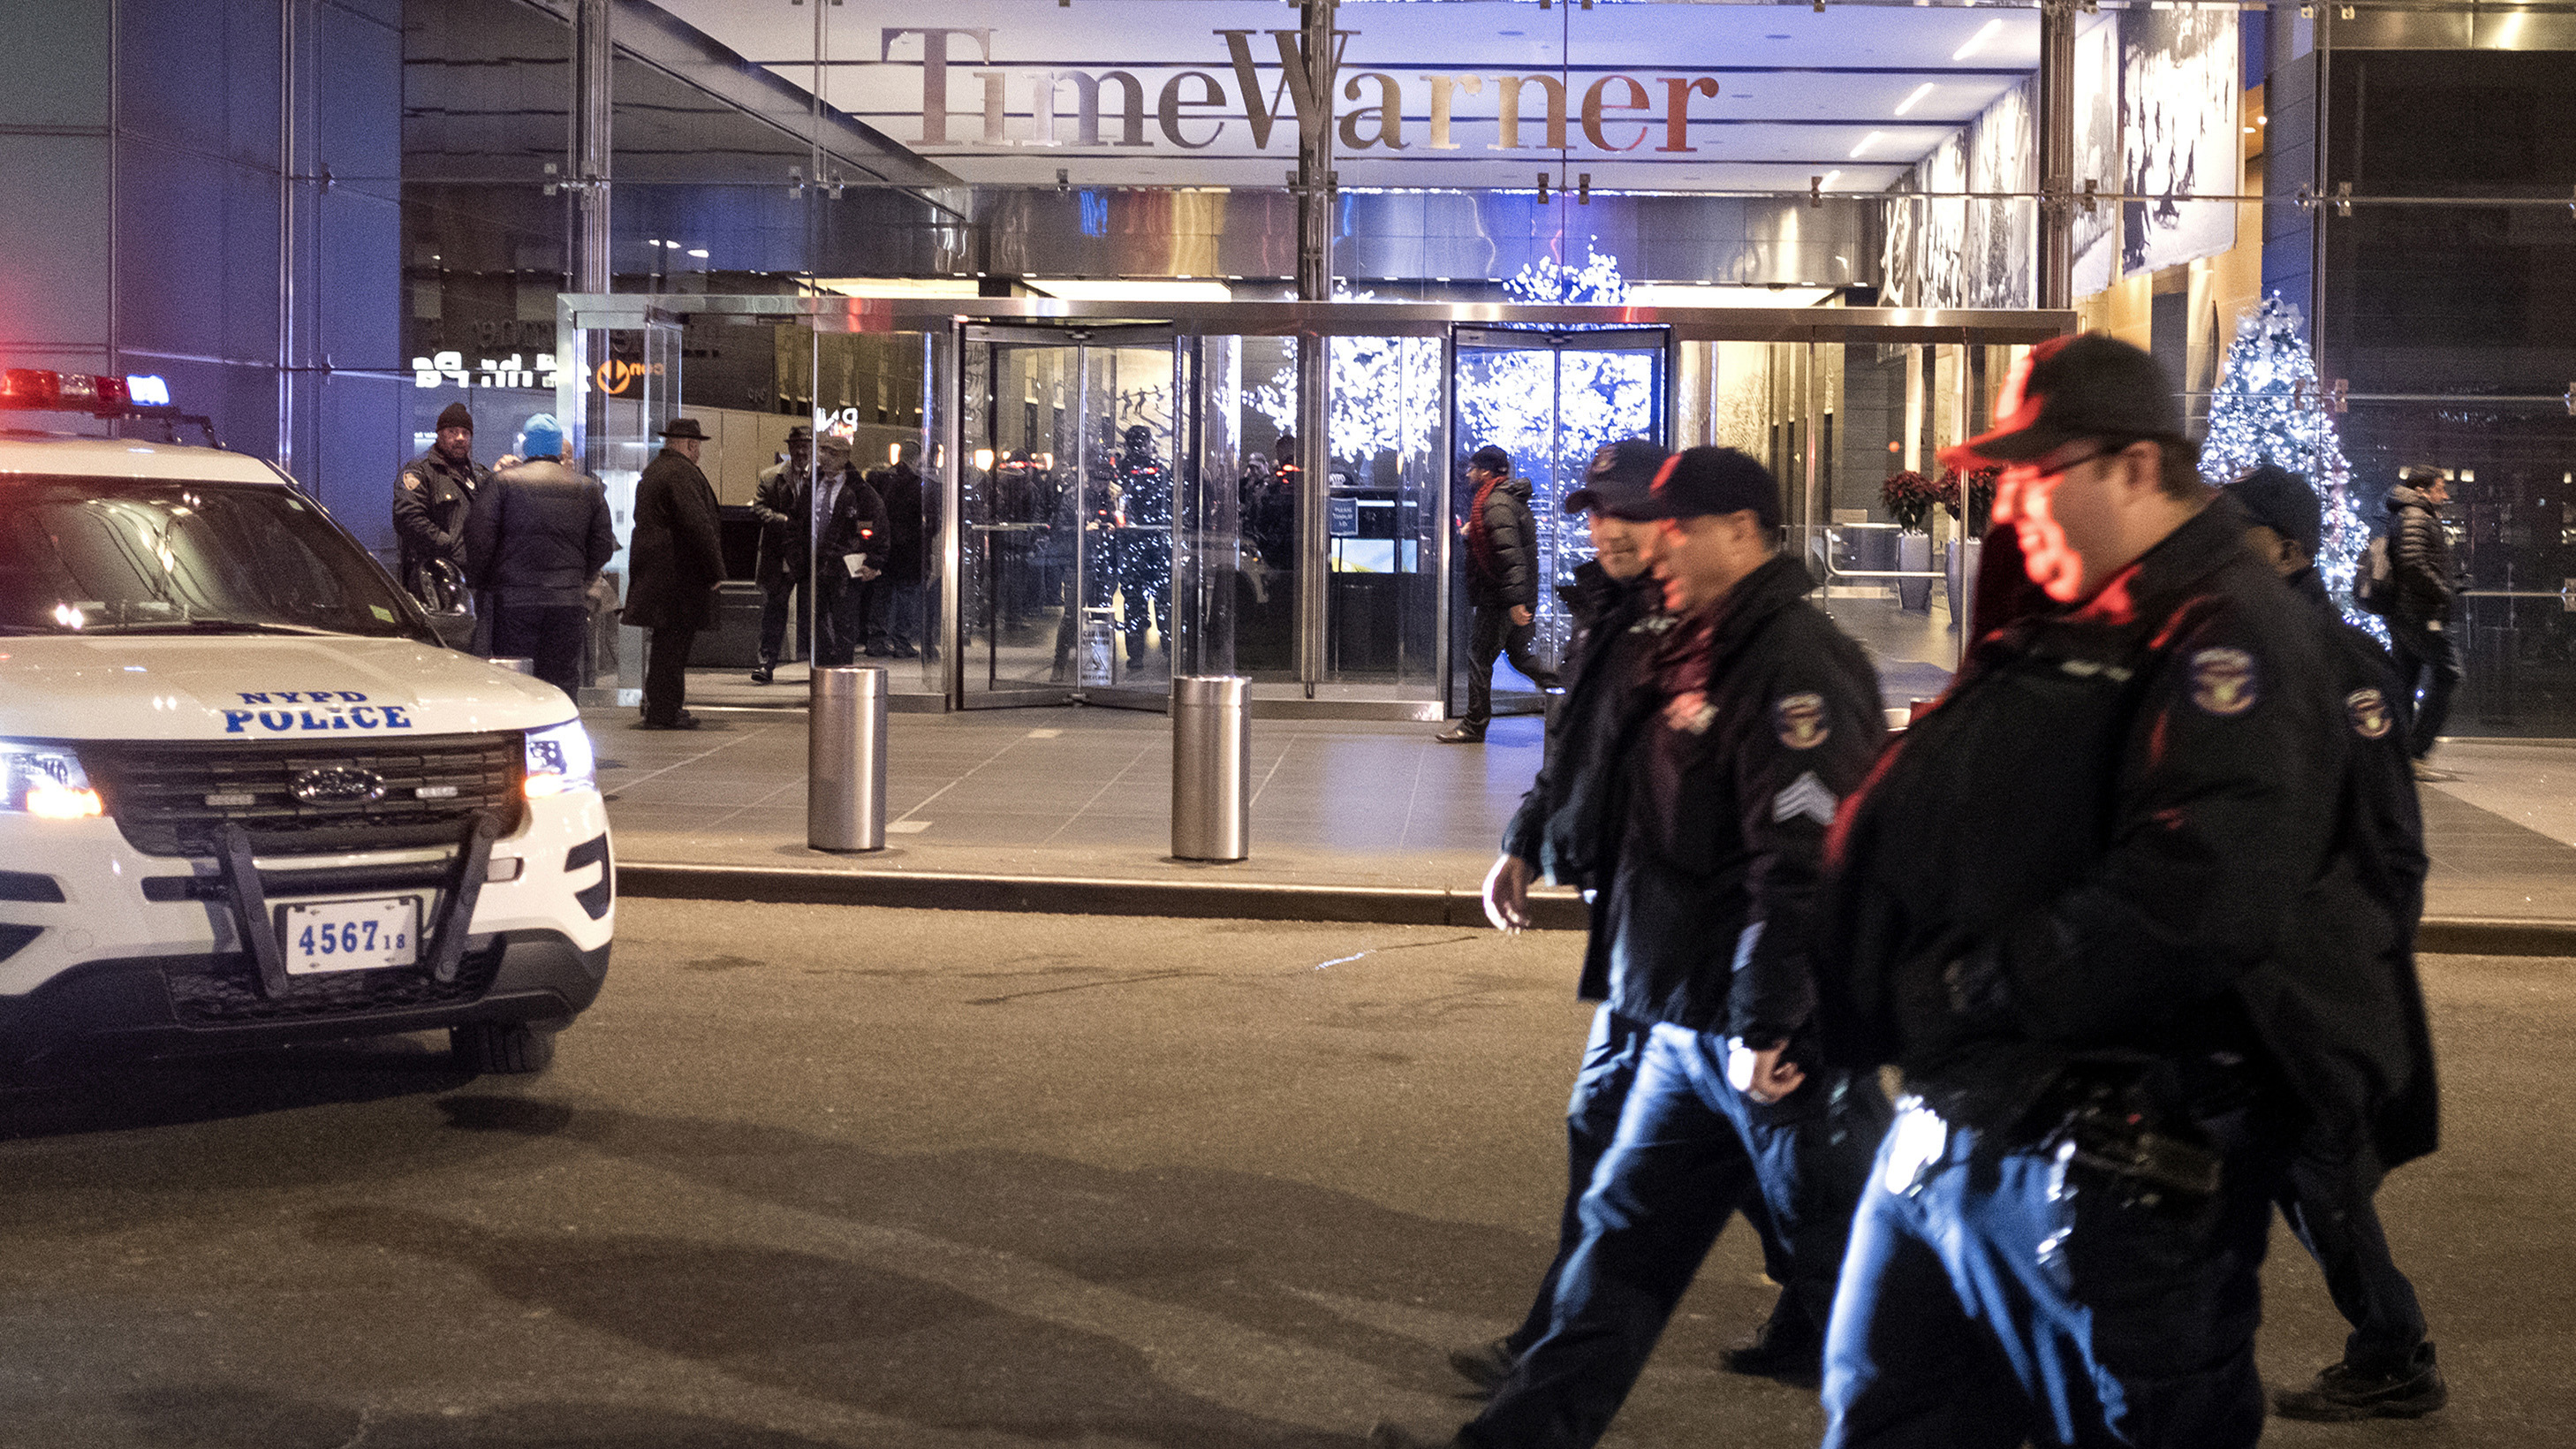 After the building was determined safe, NYPD officers walk from the area of Time Warner Center in New York Thursday night after a bomb threat was called into the building and occupants were evacuated, including CNN employees.